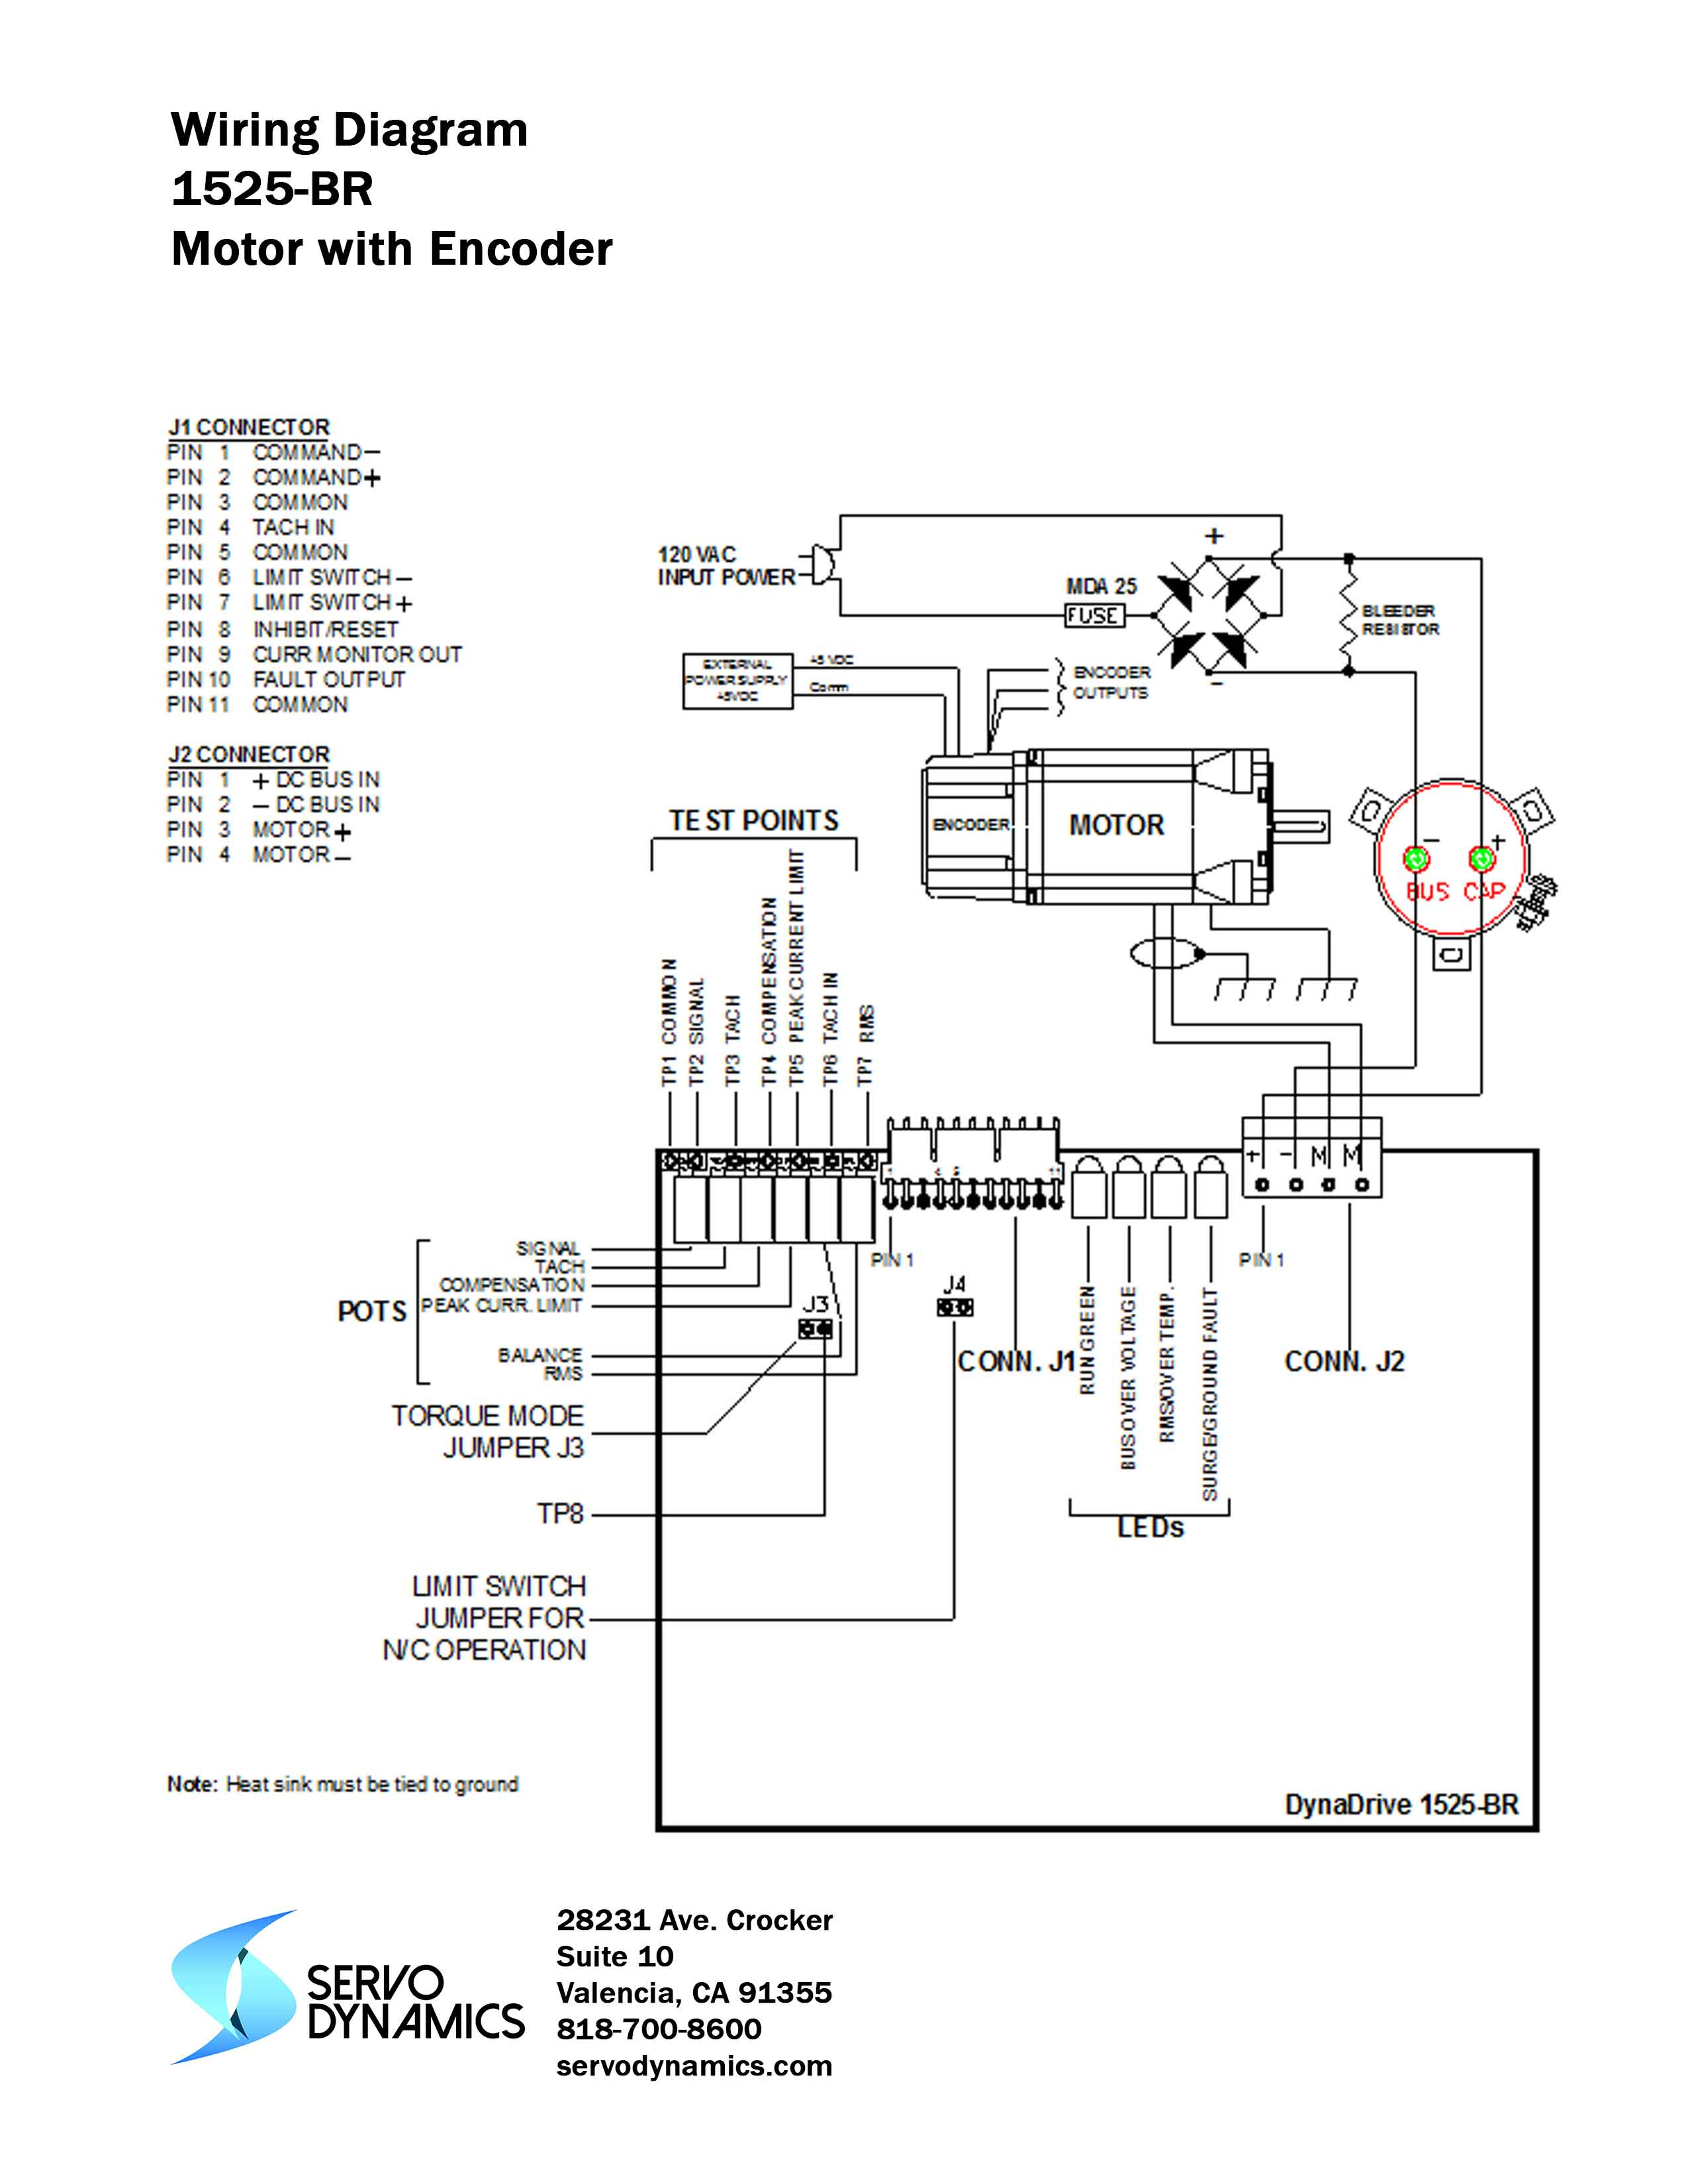 bulldog winch wiring diagram hiniker v plow a remote for with limit switch